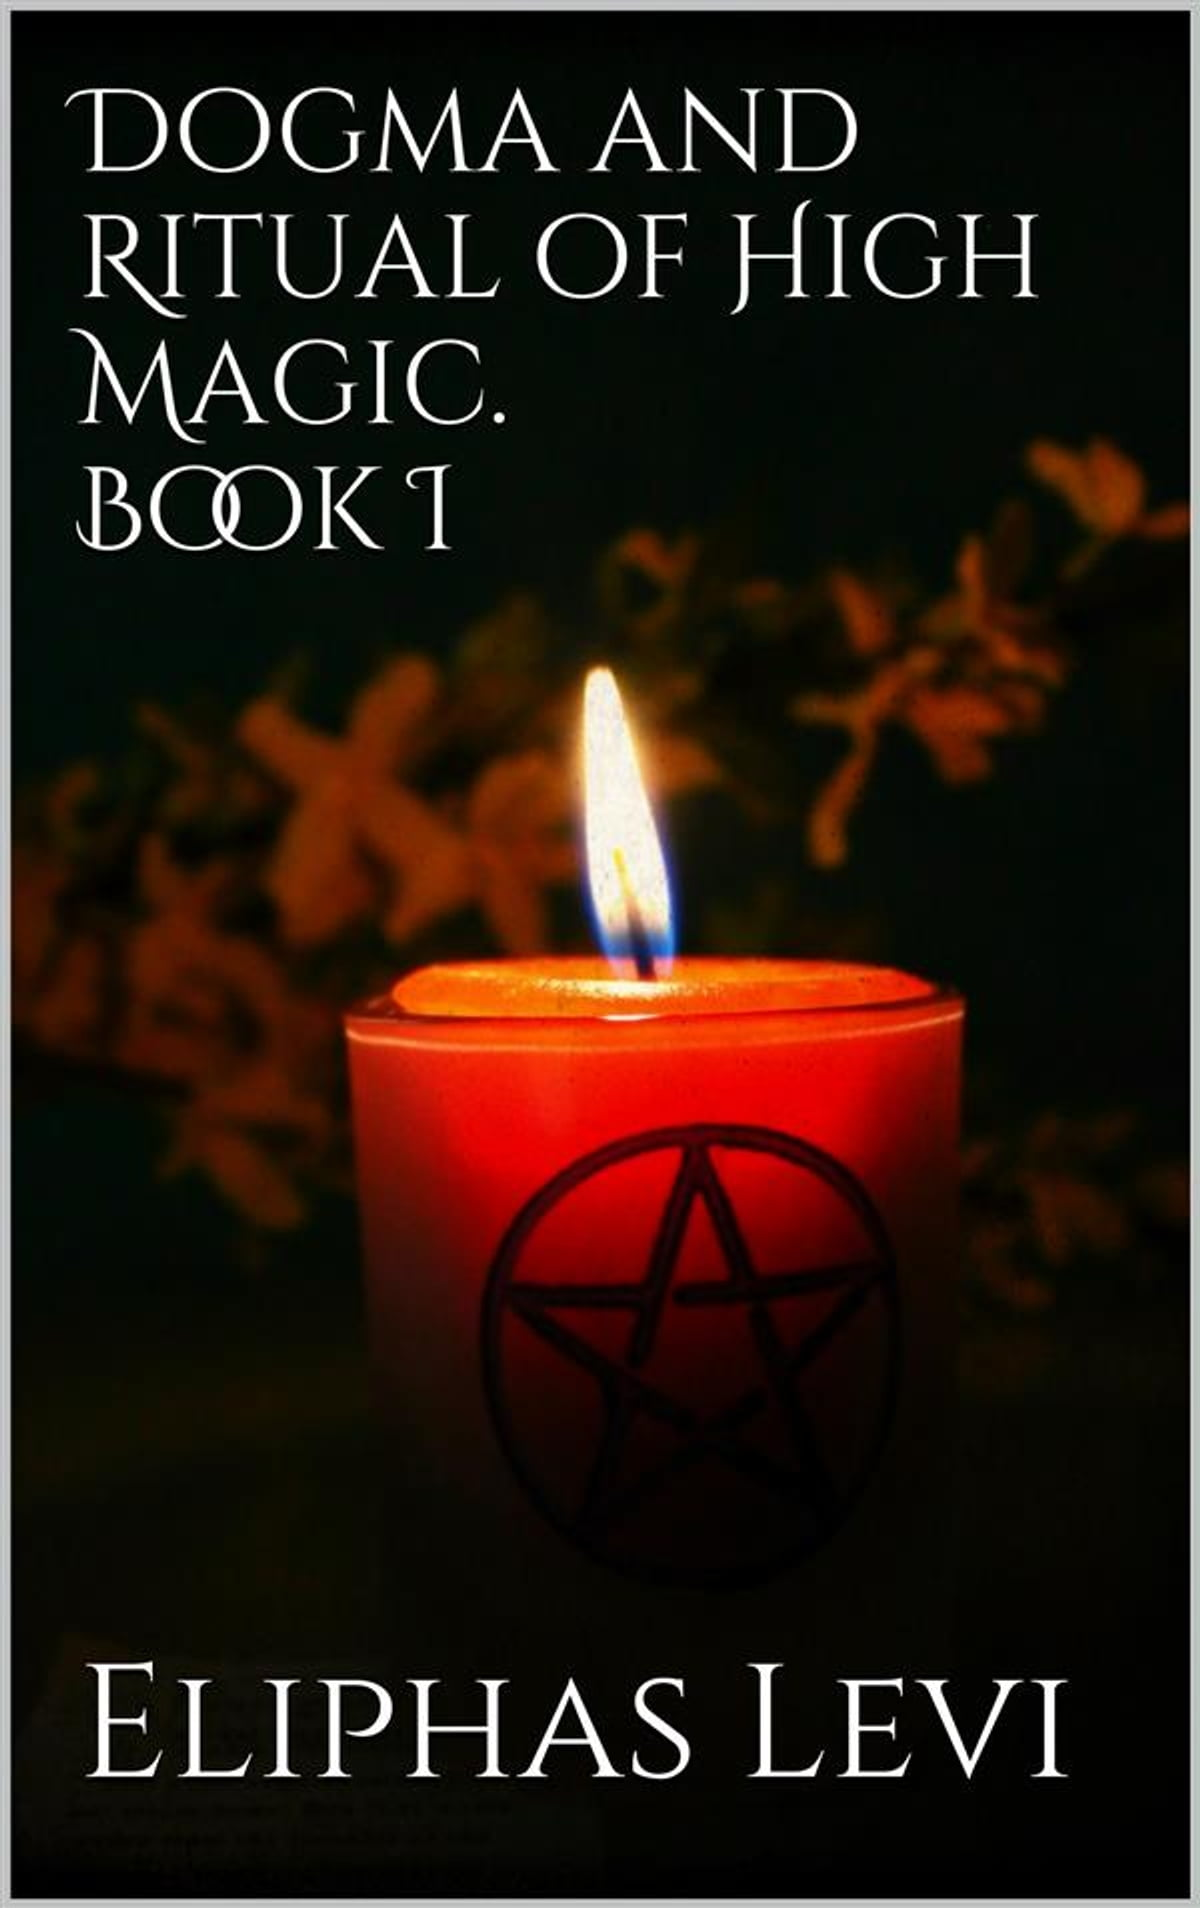 Dogma And Ritual Of High Magic Book I Ebook By Eliphas Levi